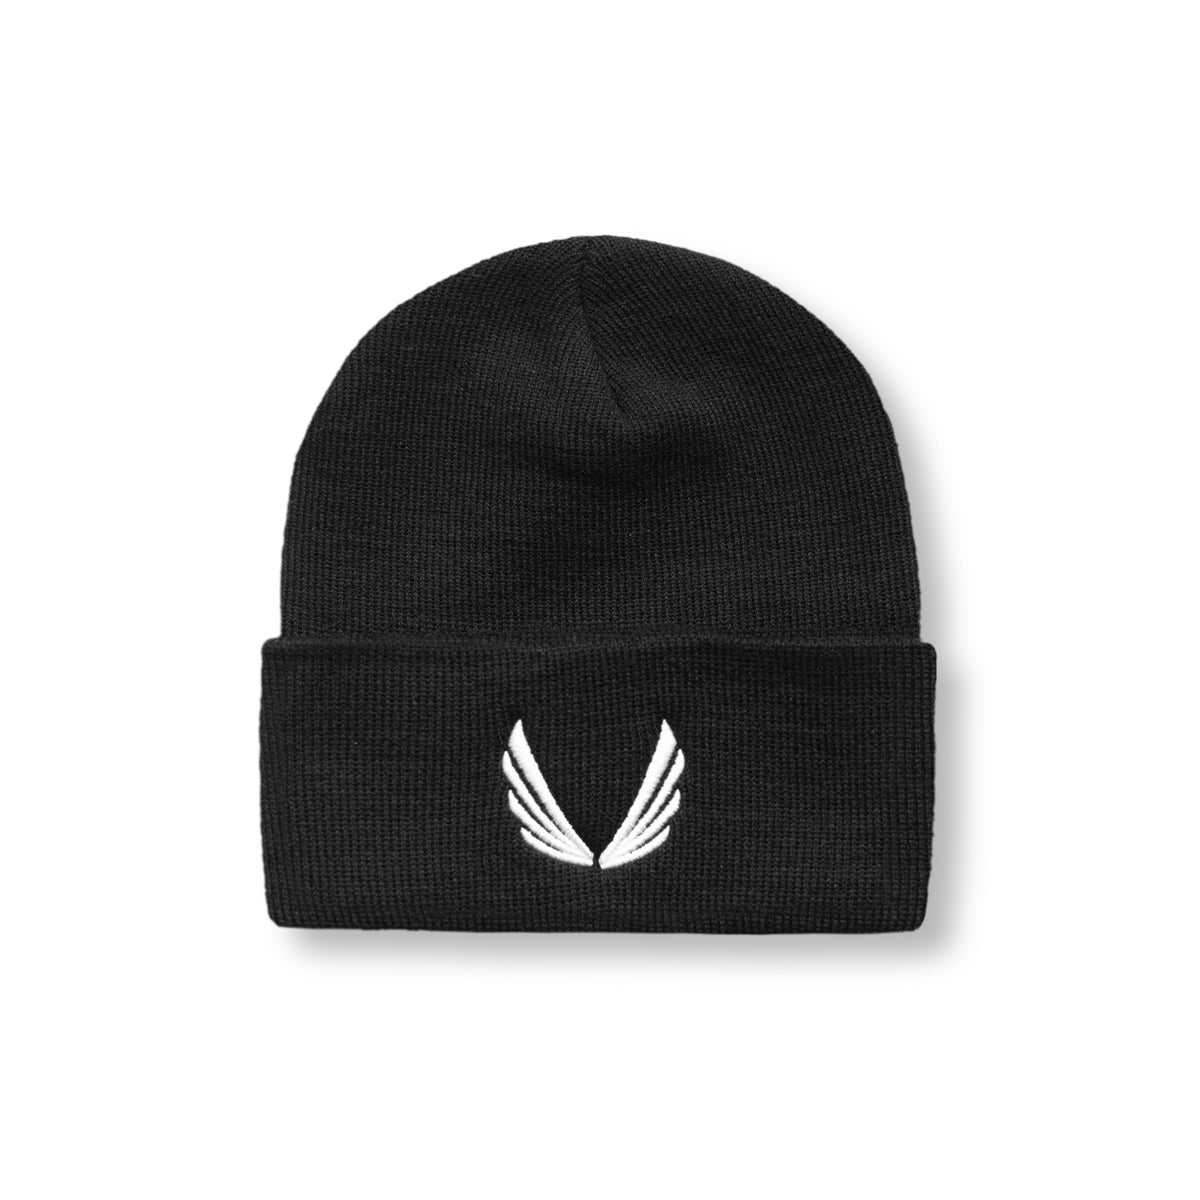 Thermal Wool Wings Logo Beanie - Black/White